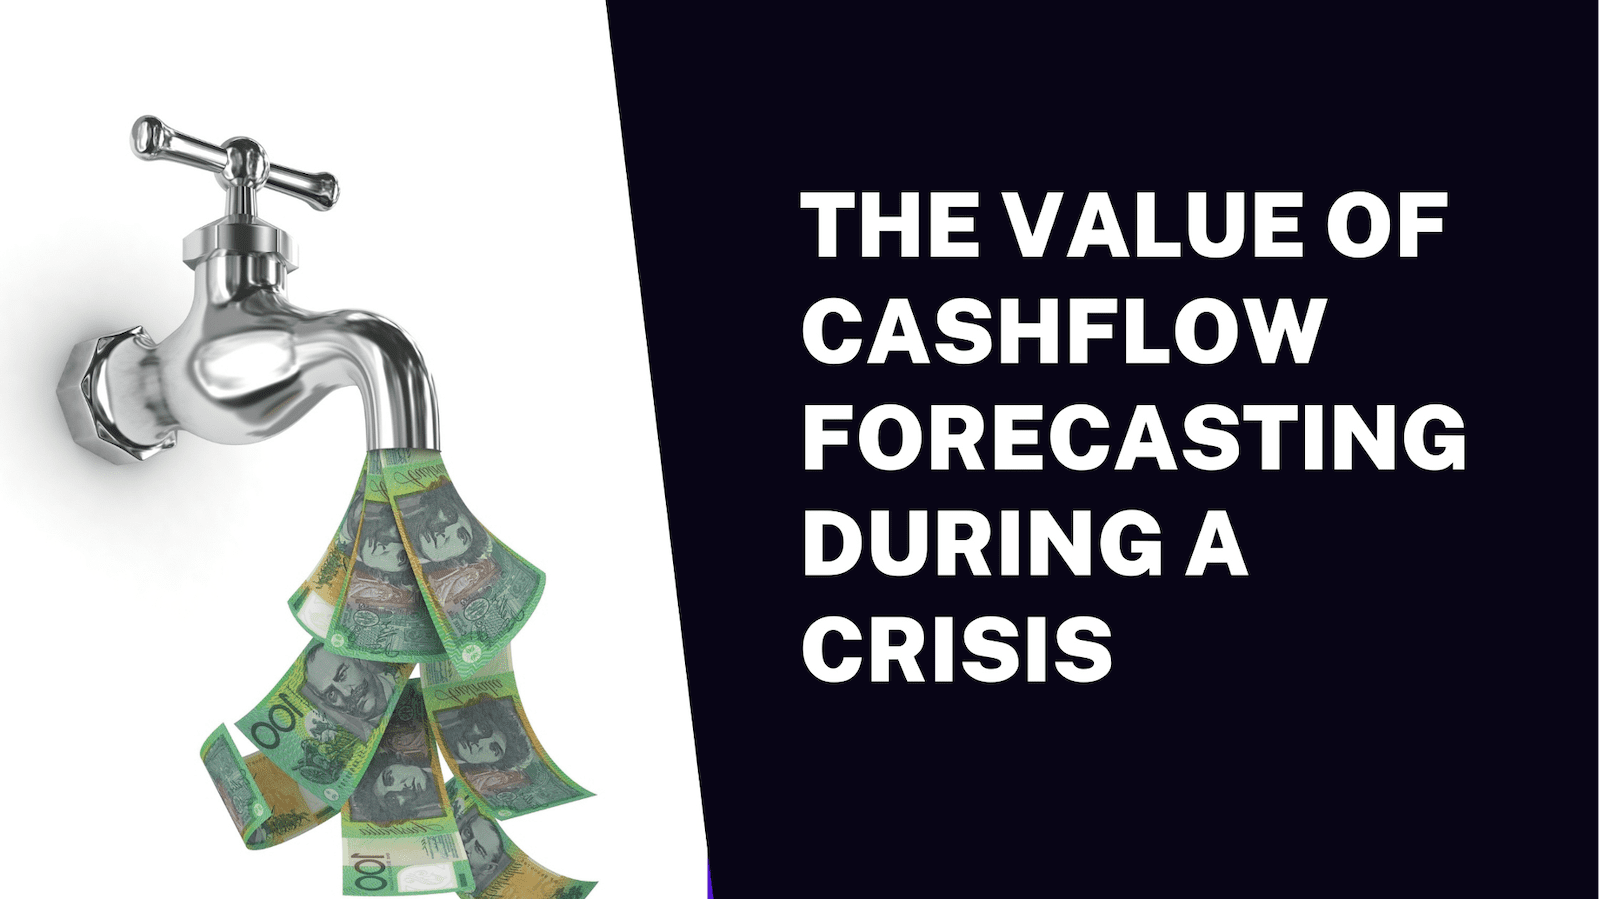 The Value of Cashflow Forecasting During a Crisis